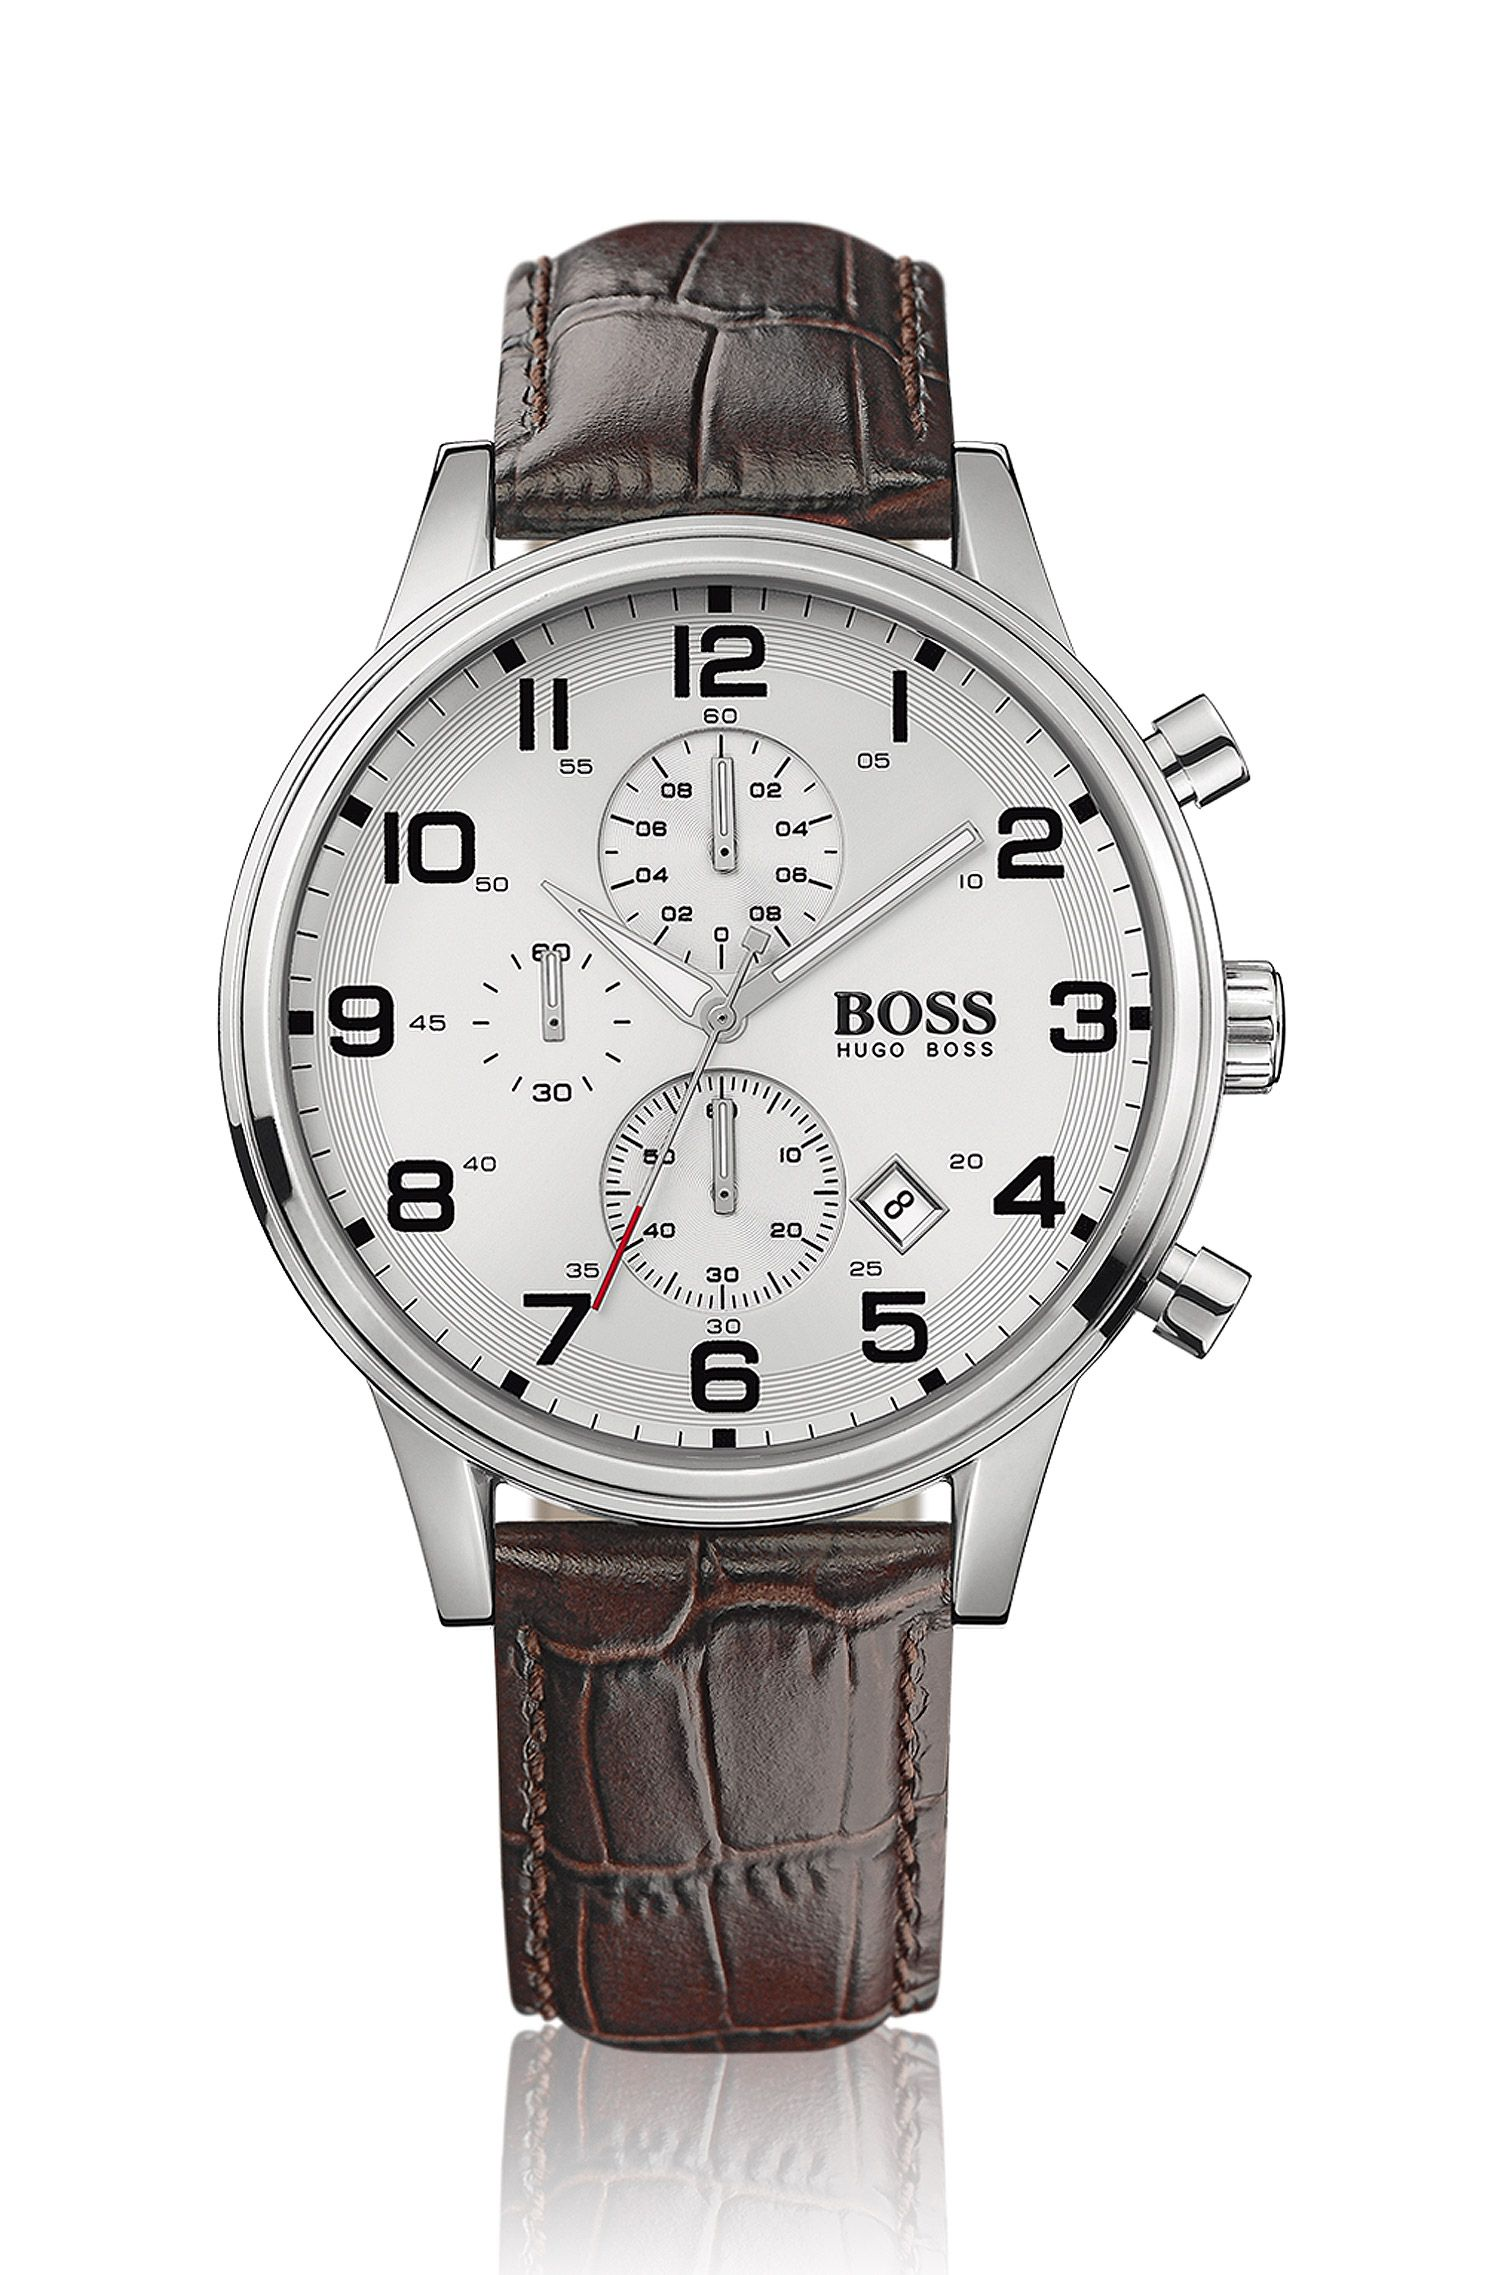 Stainless-steel two-eye flyback chronograph watch with silver dial